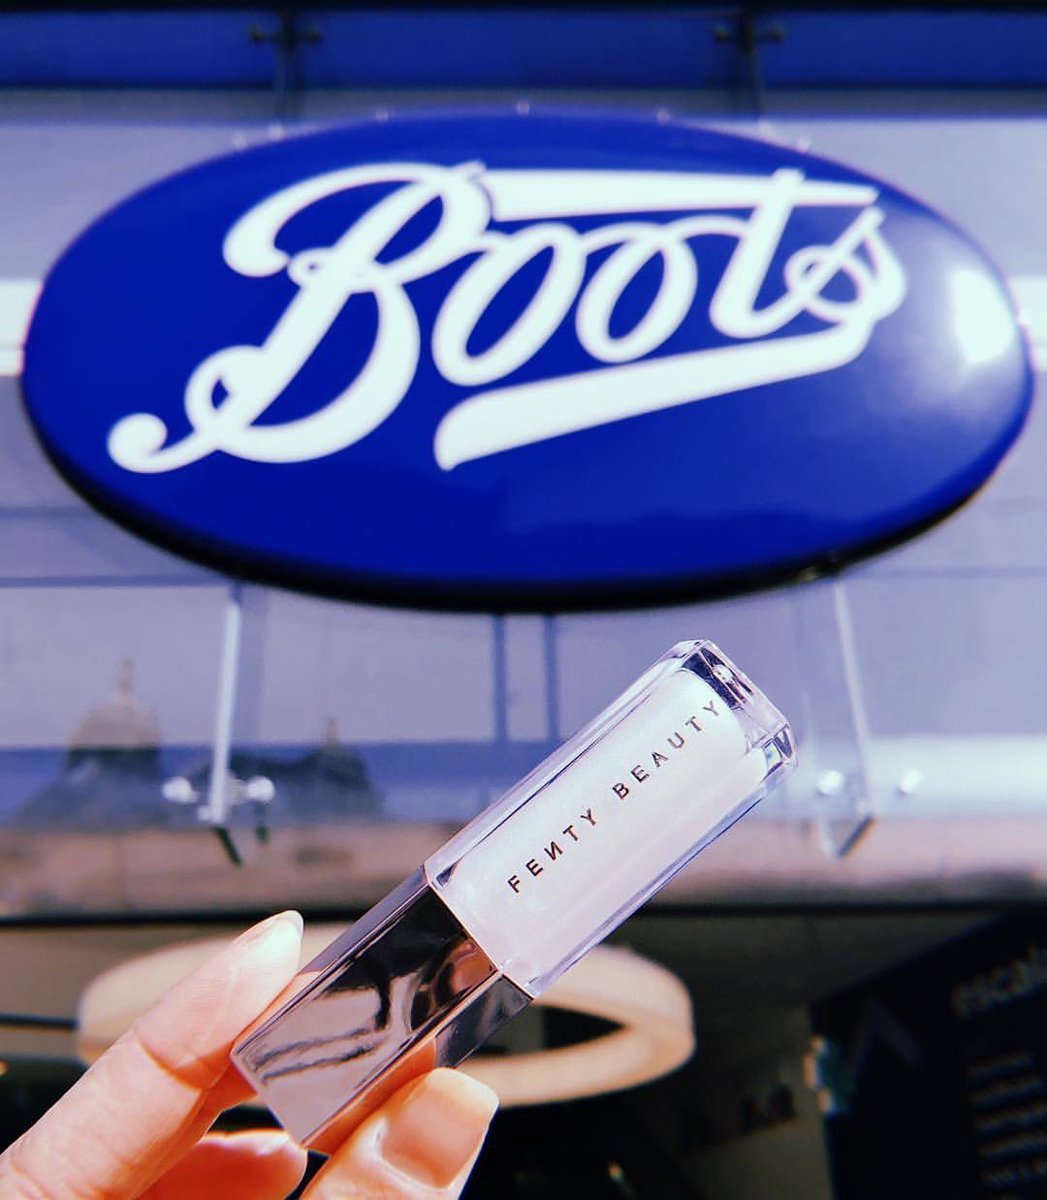 .@fentybeauty is officially taking over the UK! I'm here to announce our brand new partnership with @BootsUK !! Look out for us at locations from MAY 10th !! I'm so excited, I love Boots and I love my UK fans!!! Get ready for #FENTYBEAUTYxBOOTS !! 🇬🇧🇬🇧🇬🇧